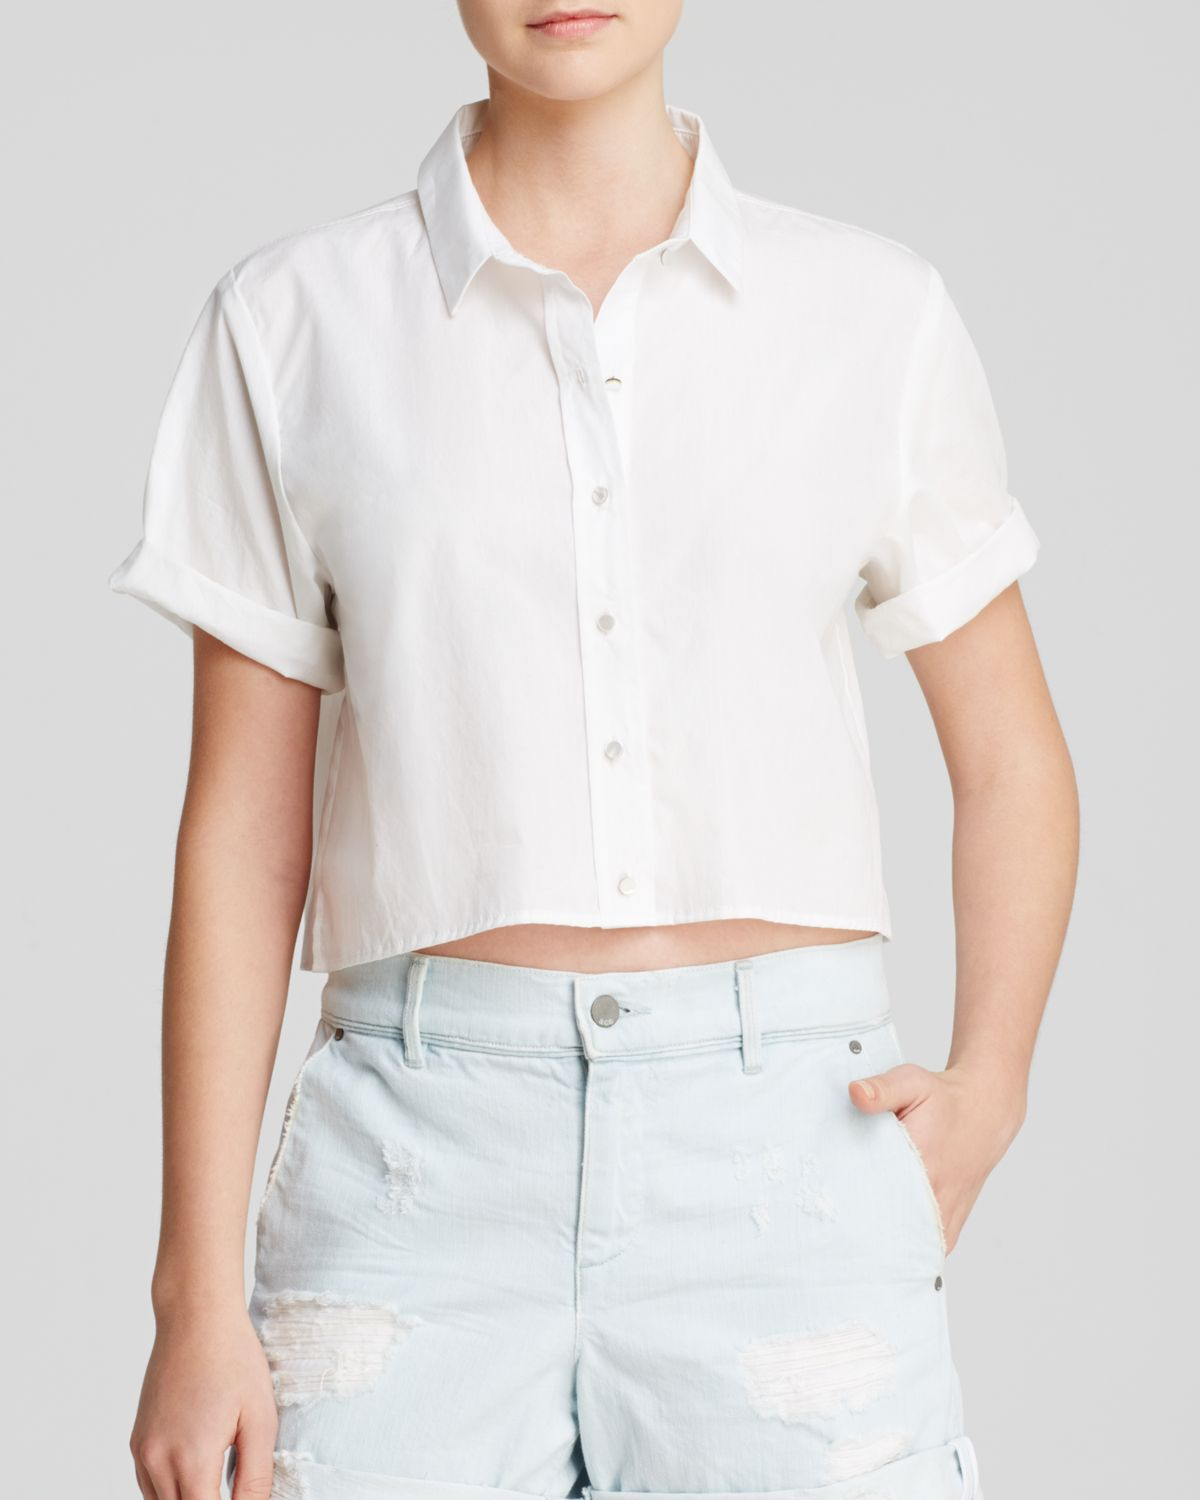 Ace Monroe Crop Top Shirt in White | Lyst